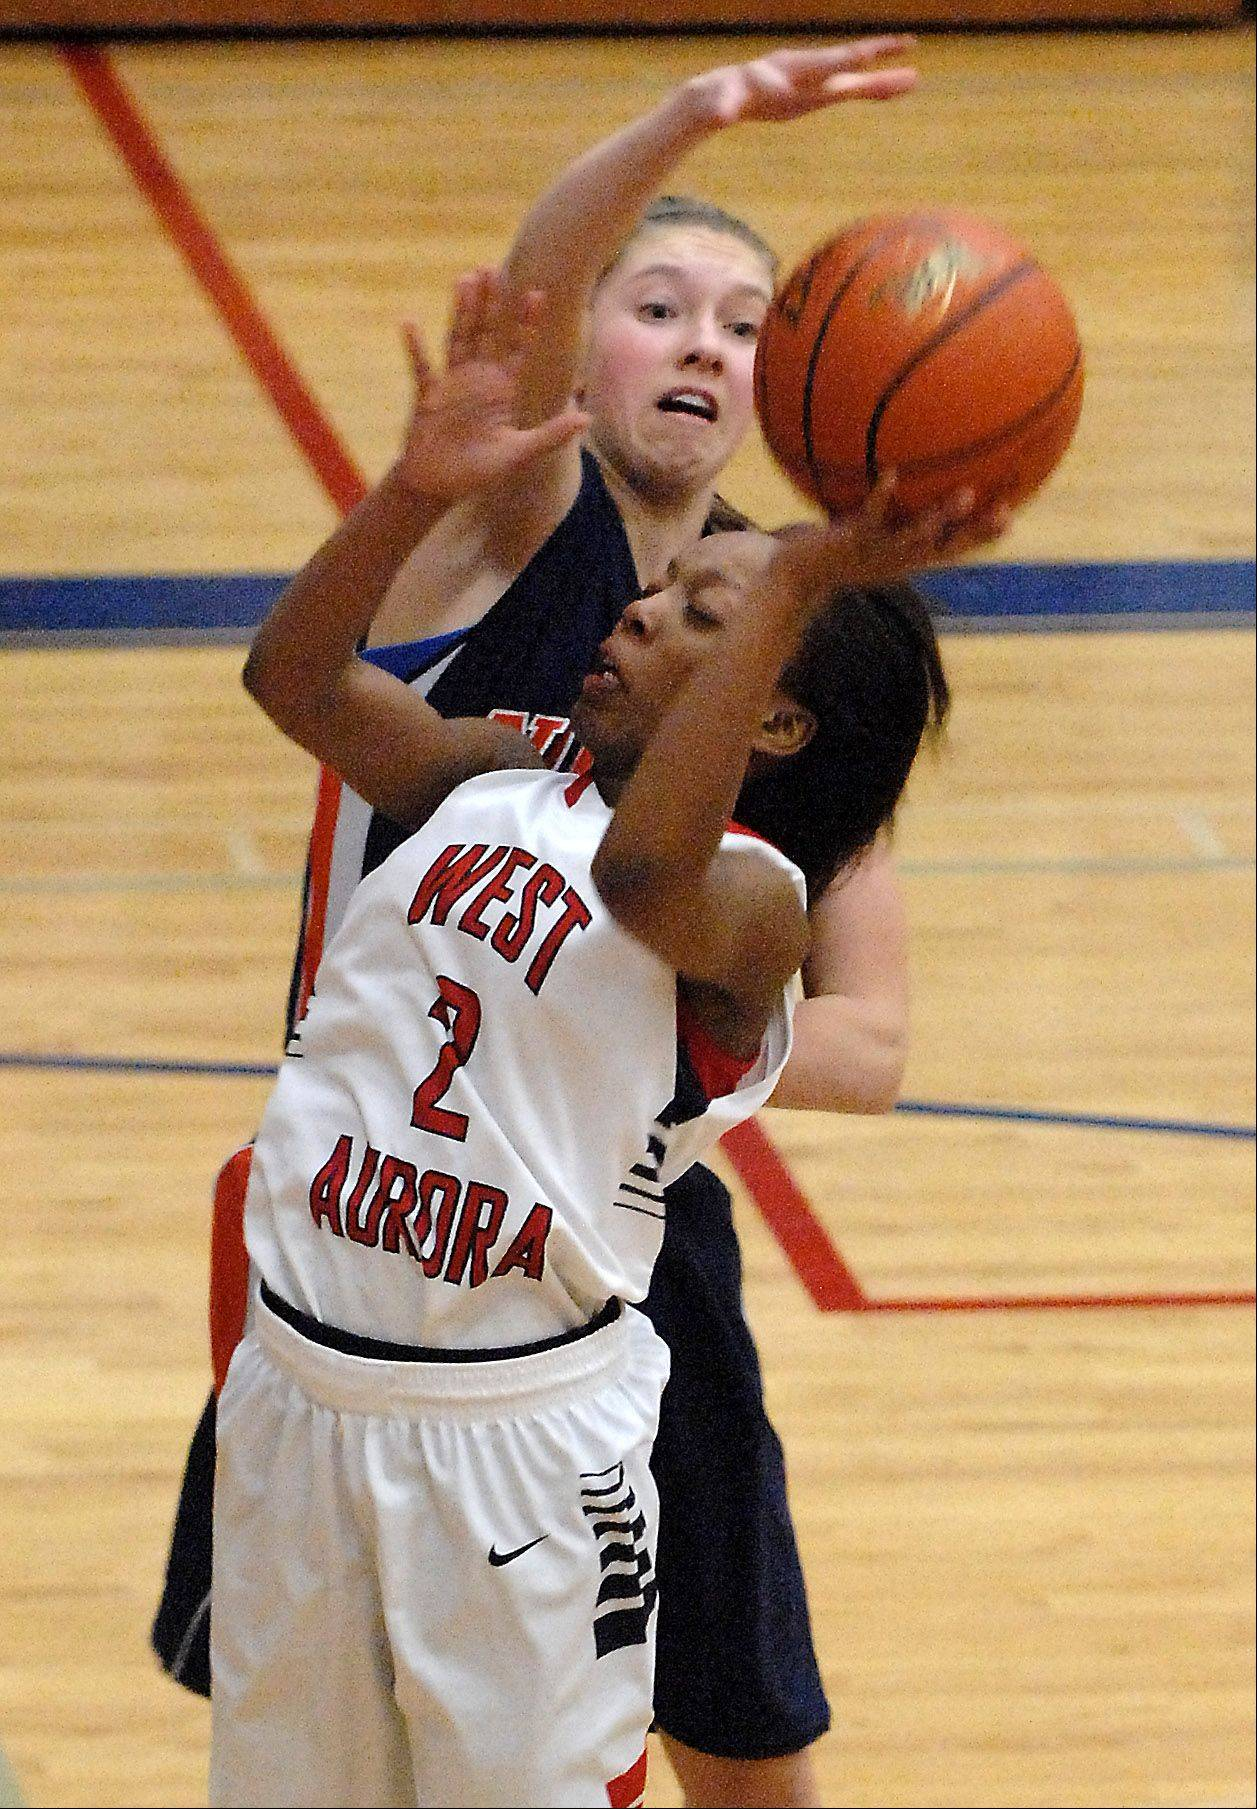 West Aurora's Alexis Wiggins is blocked by Naperville North's Katie Cores.